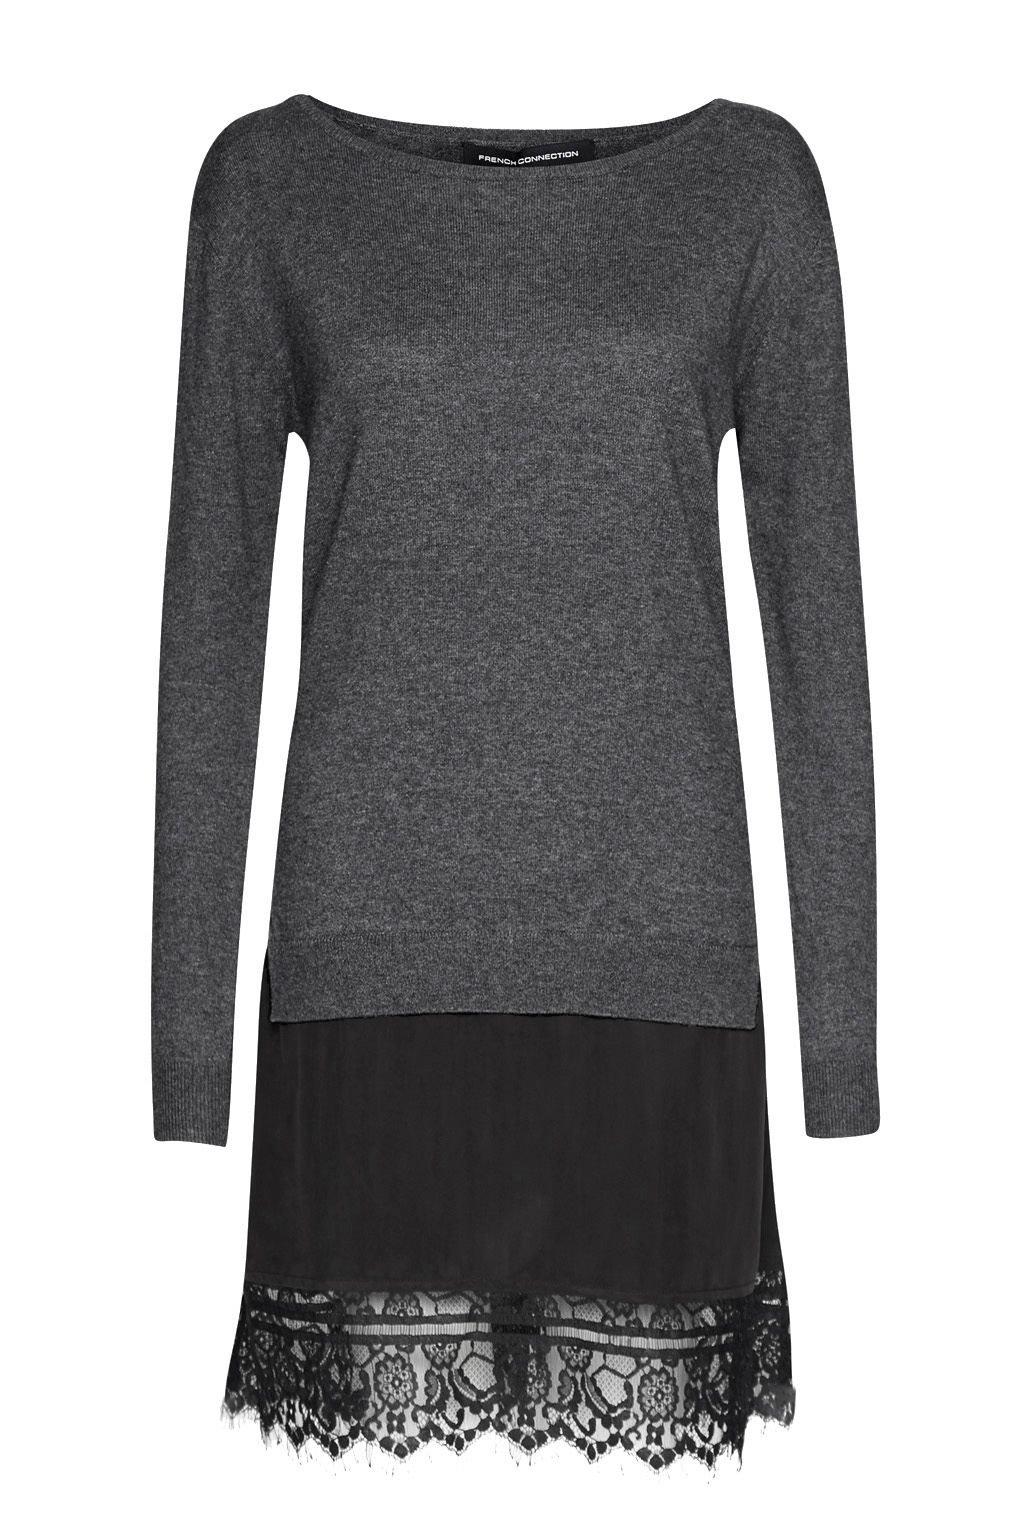 French Connection Melba Layered Effect Jumper Dress, Dark Grey